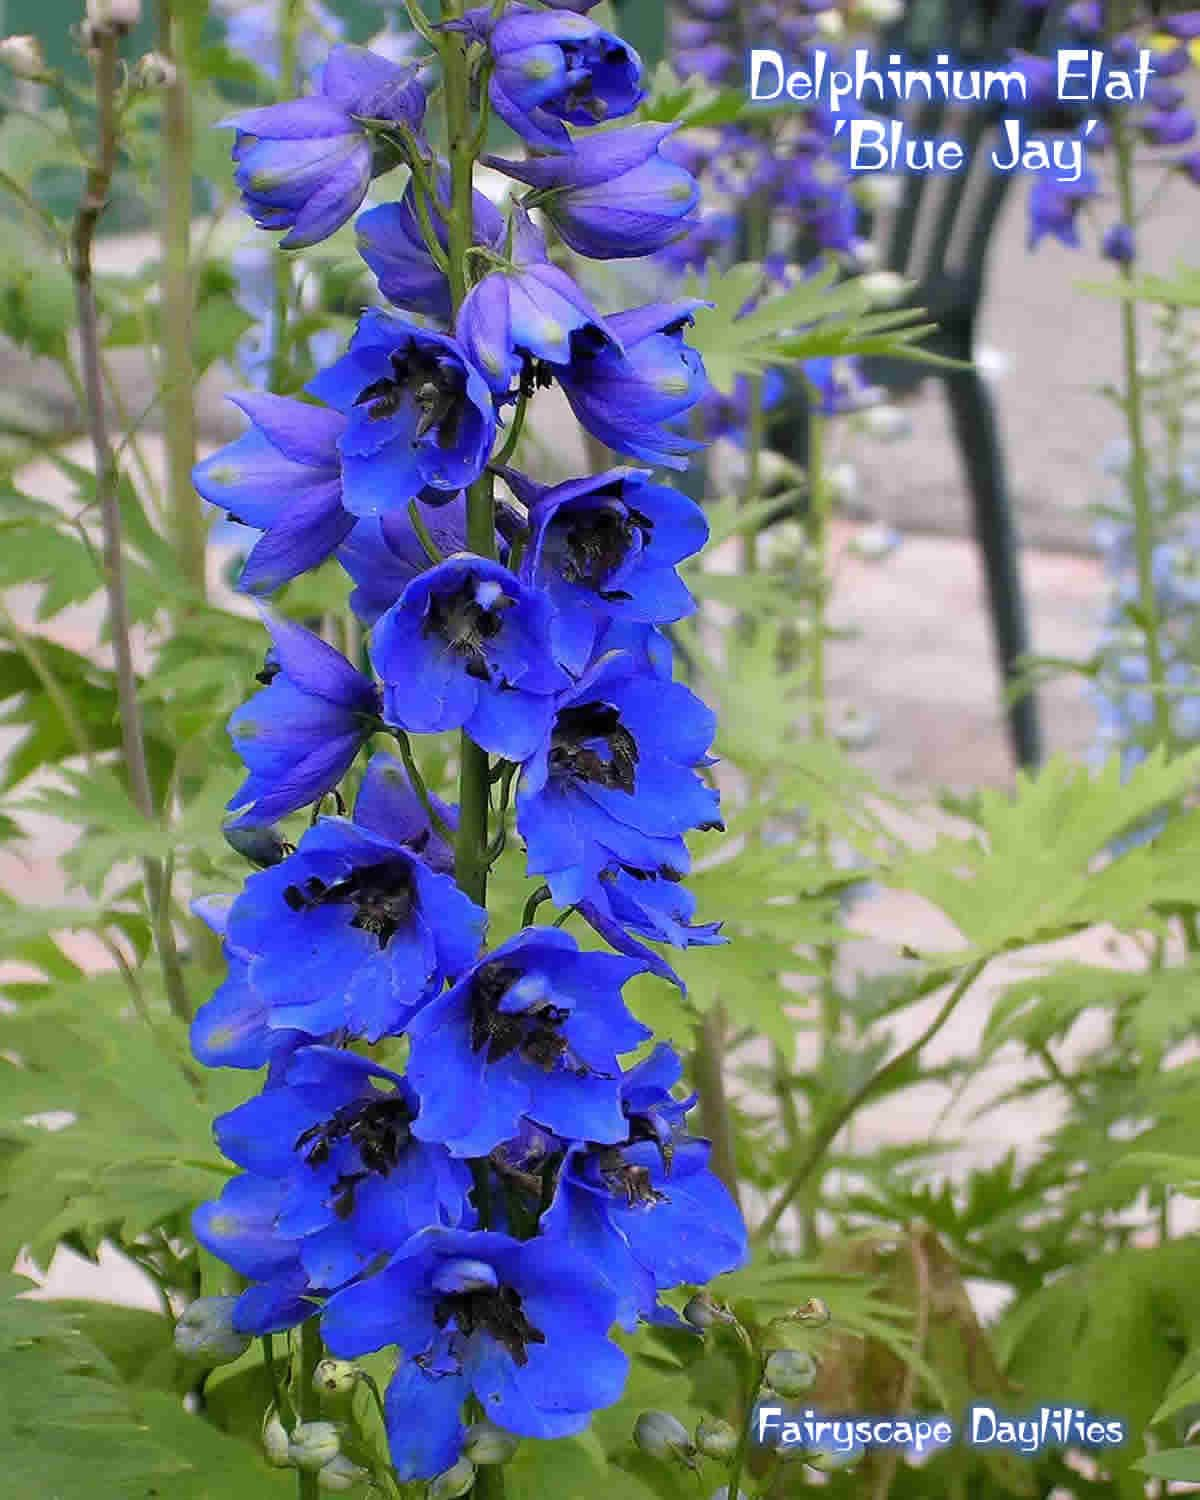 Delphinium Flowers Meanings The Symbolic Meaning Of The Delphinium